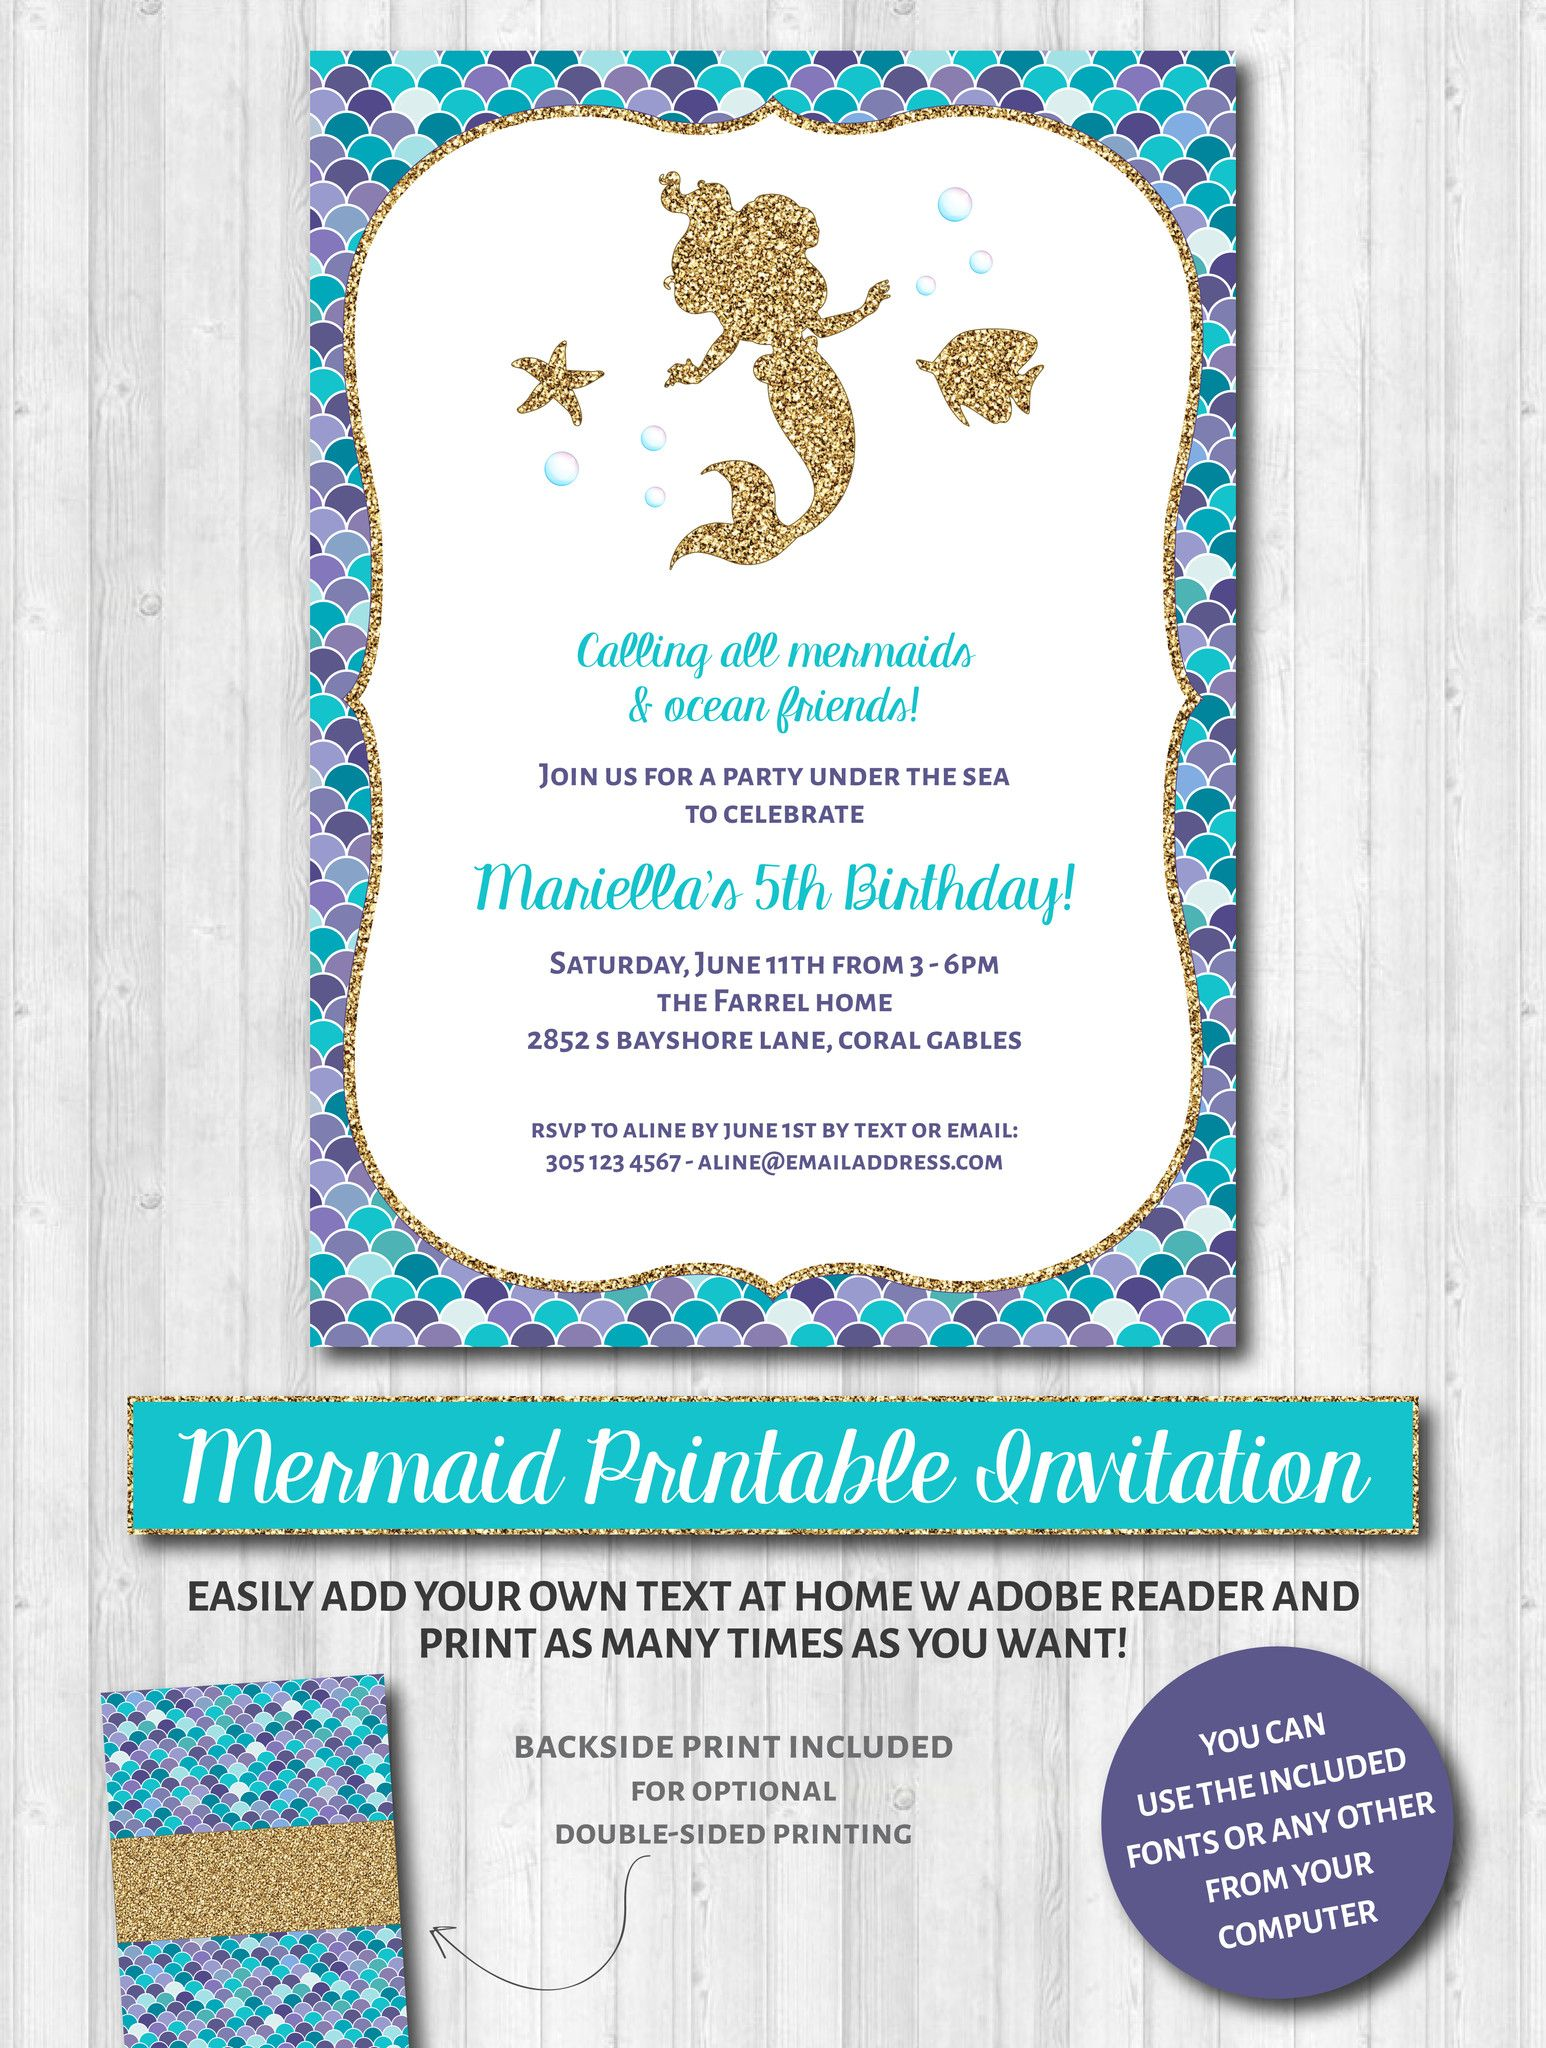 Mermaid Party Invitations: Aqua, purple & gold glitter | Mermaid ...